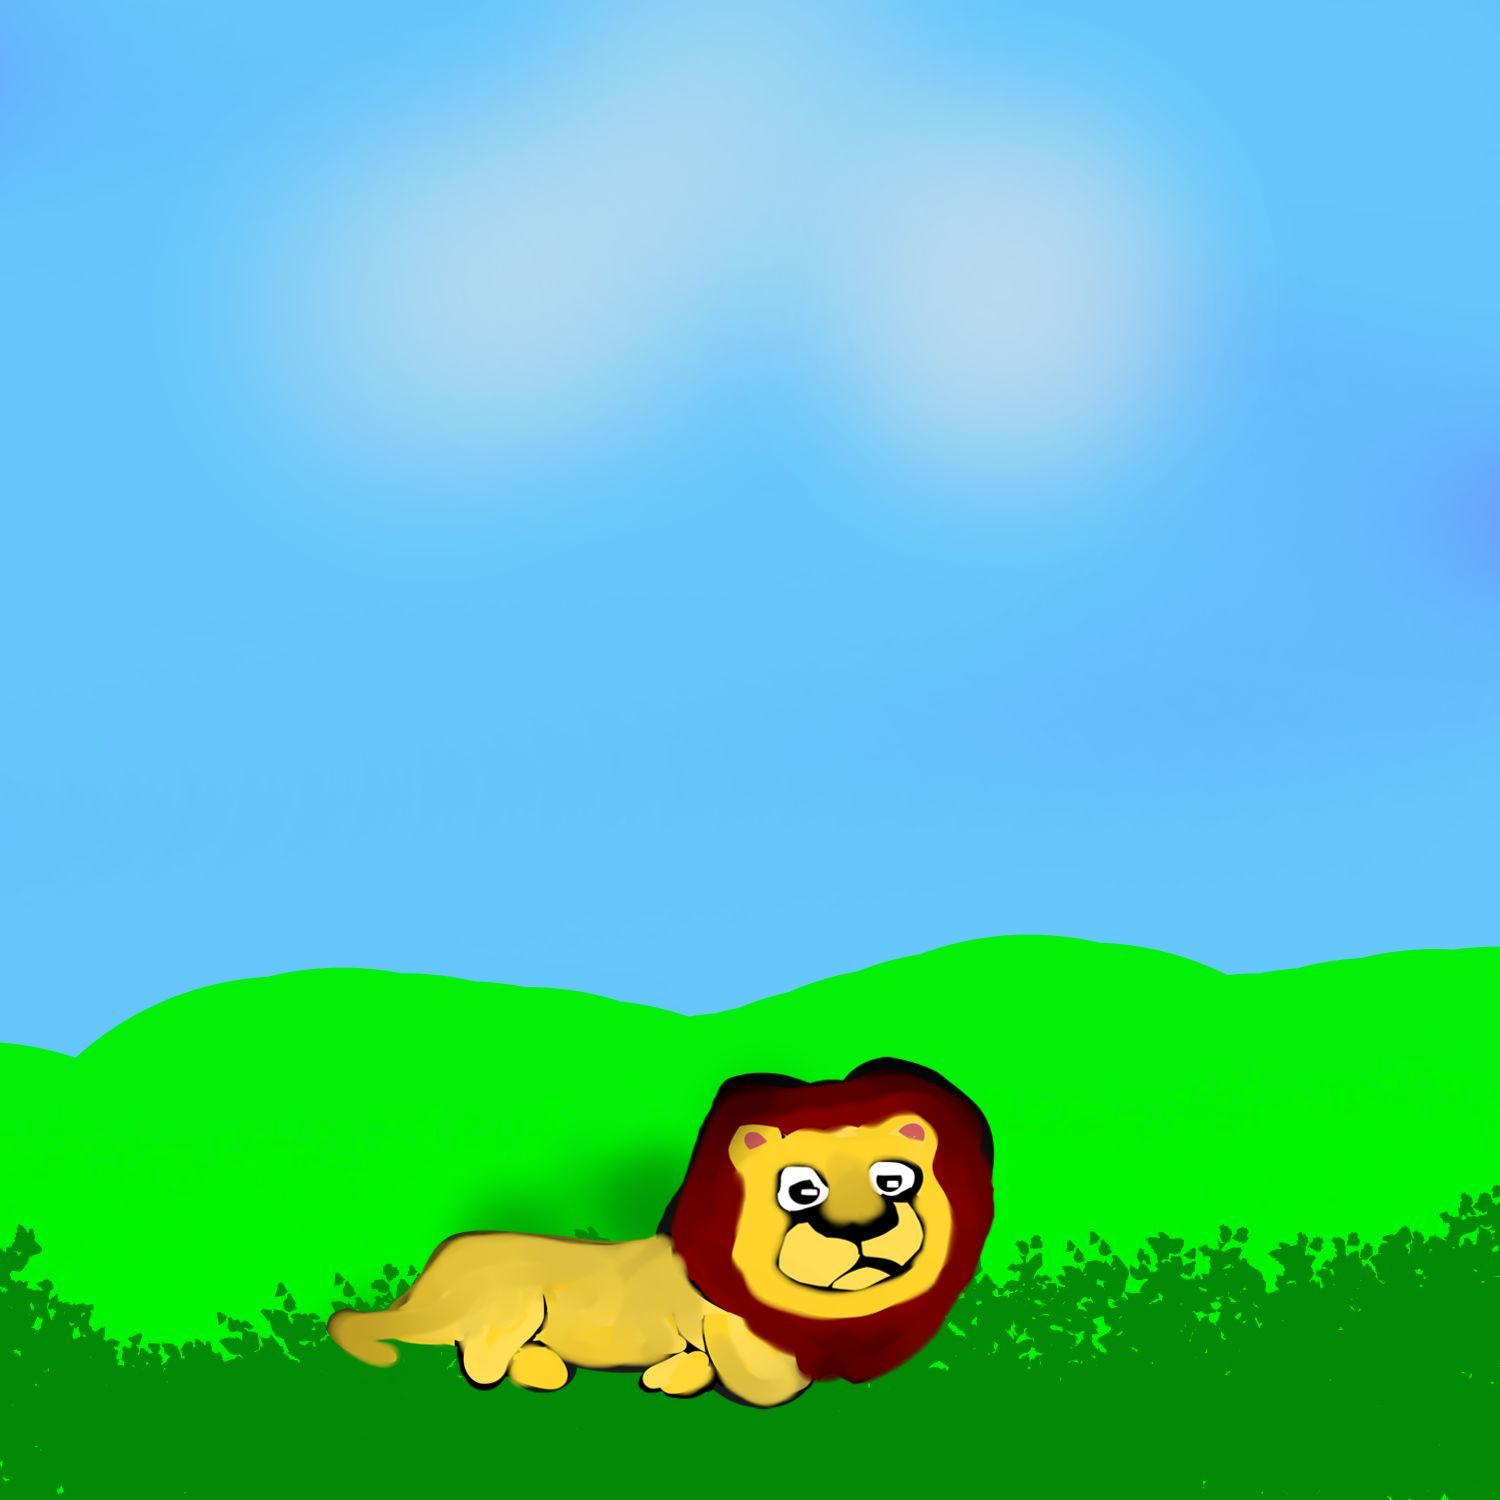 Some Lion Thoughts